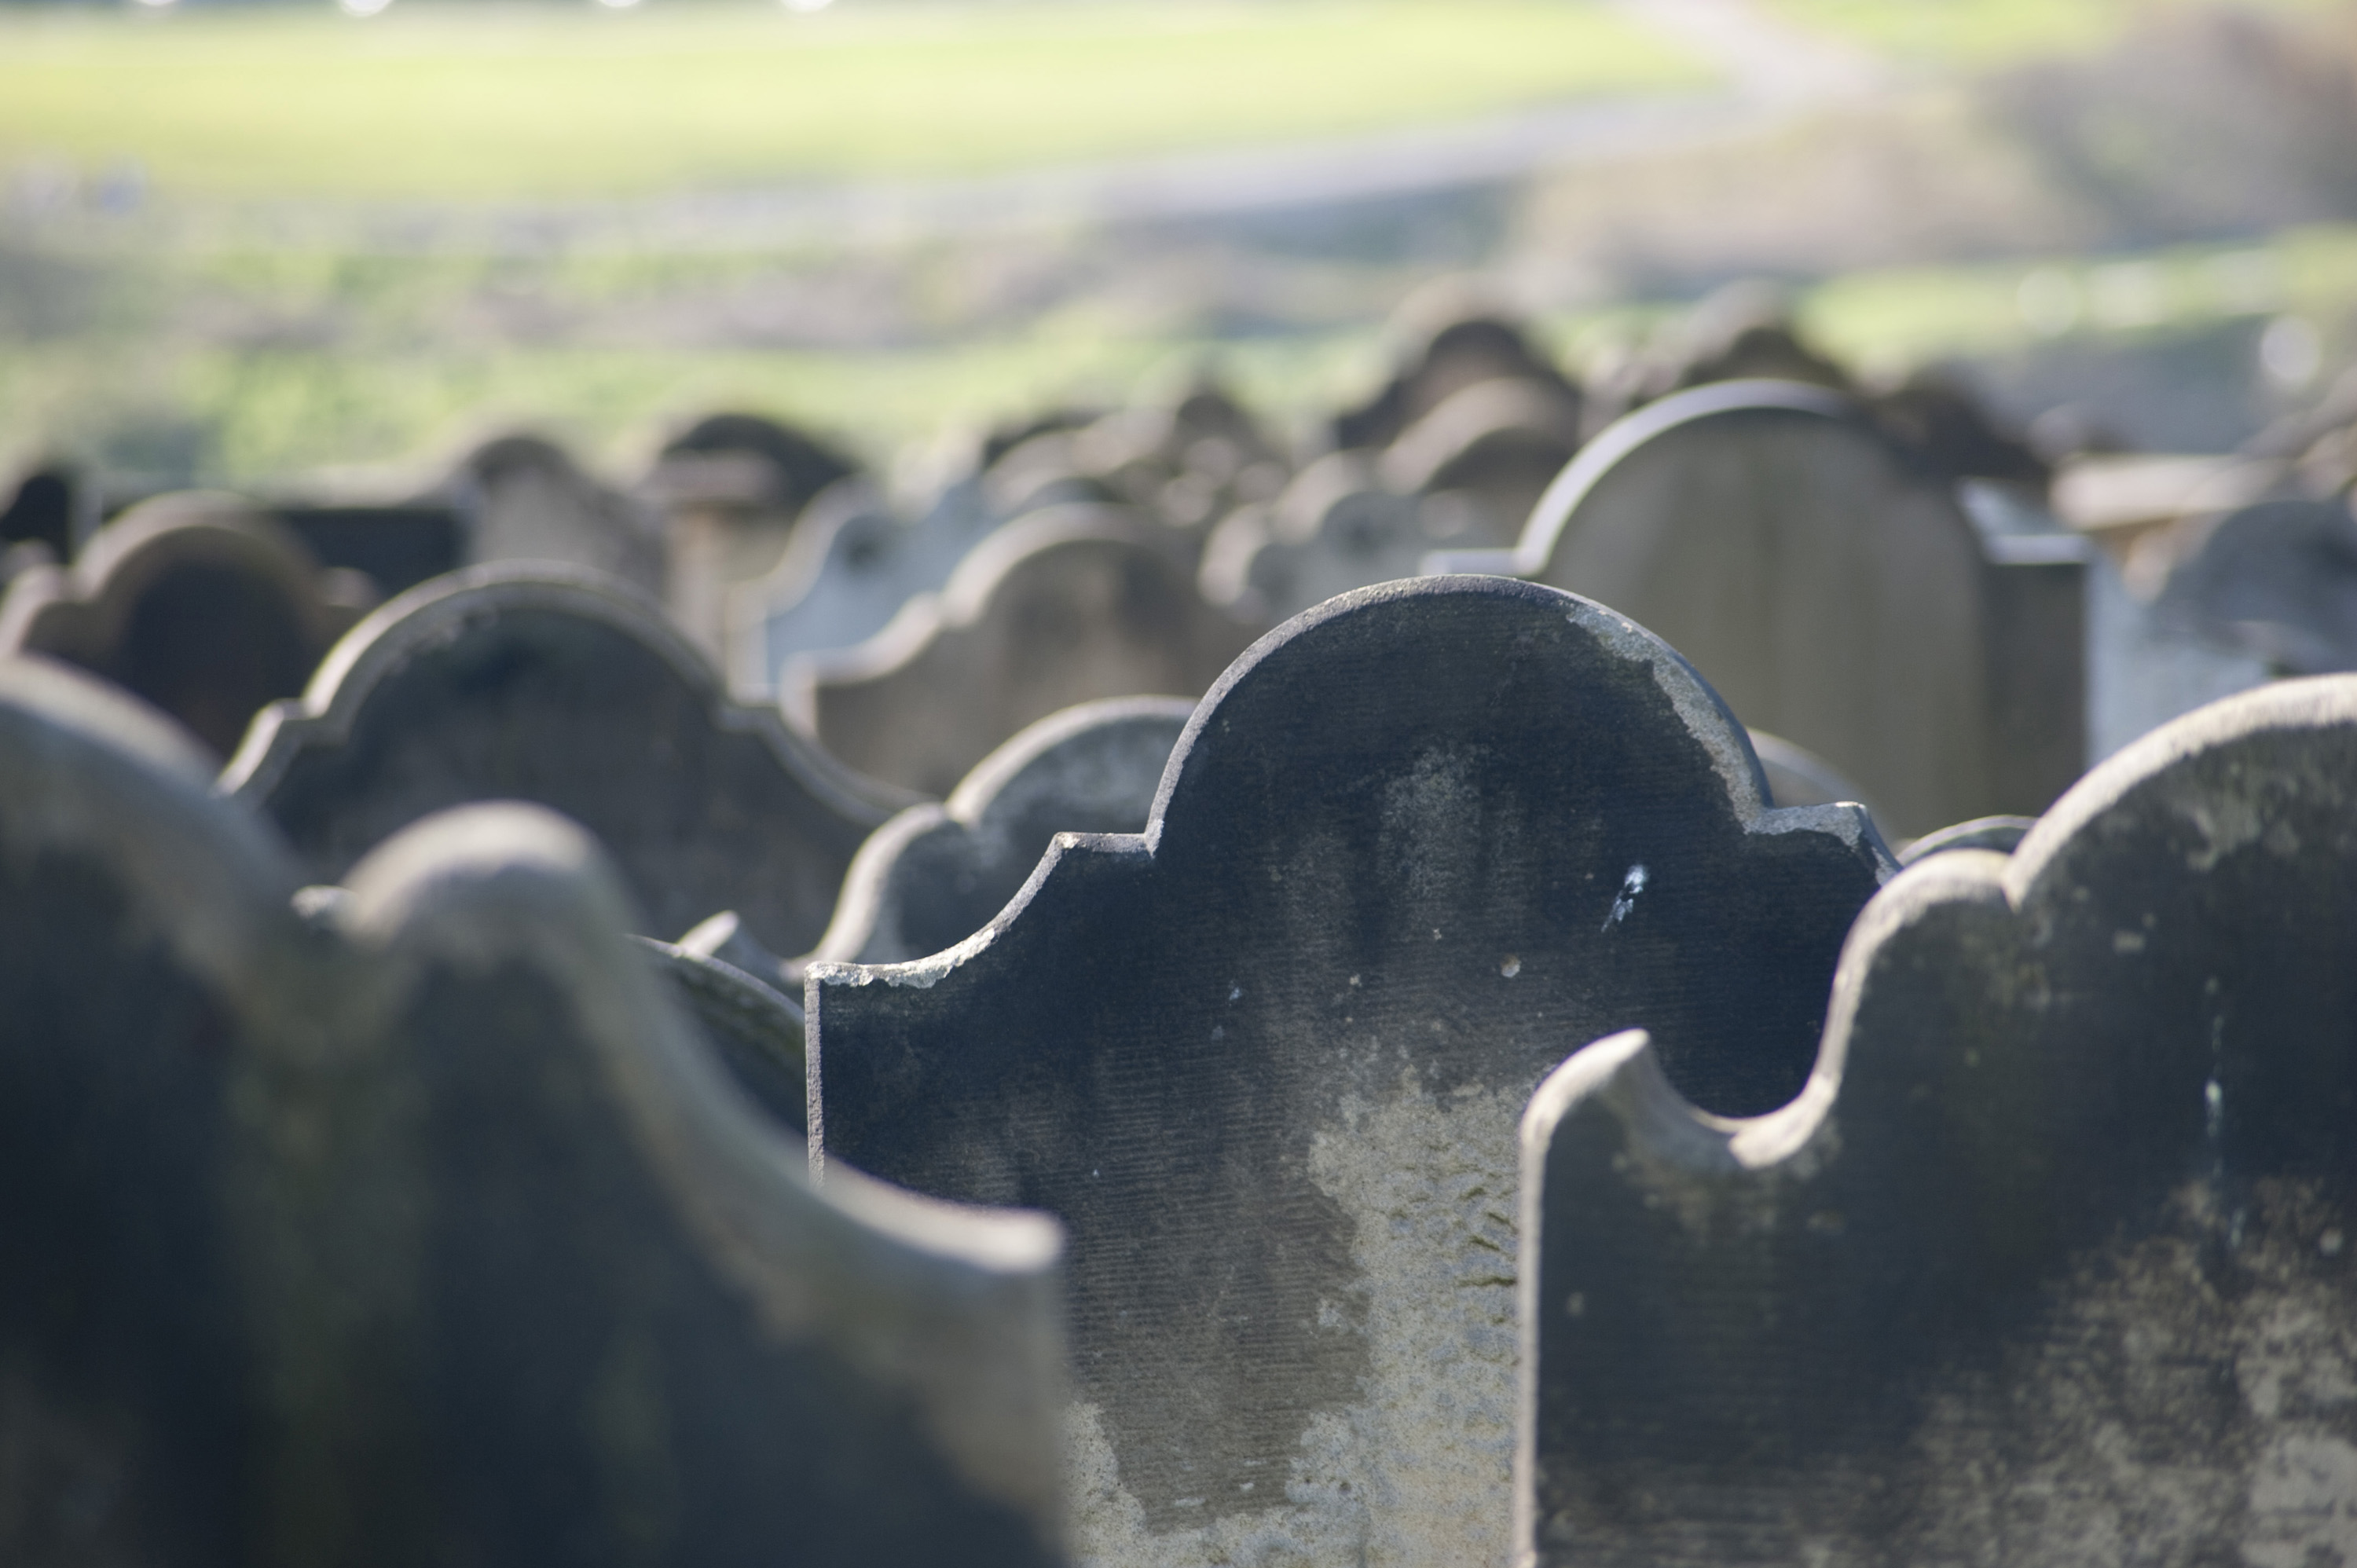 rows of grave headstones in a grave yard pictured with a narrow depth of field